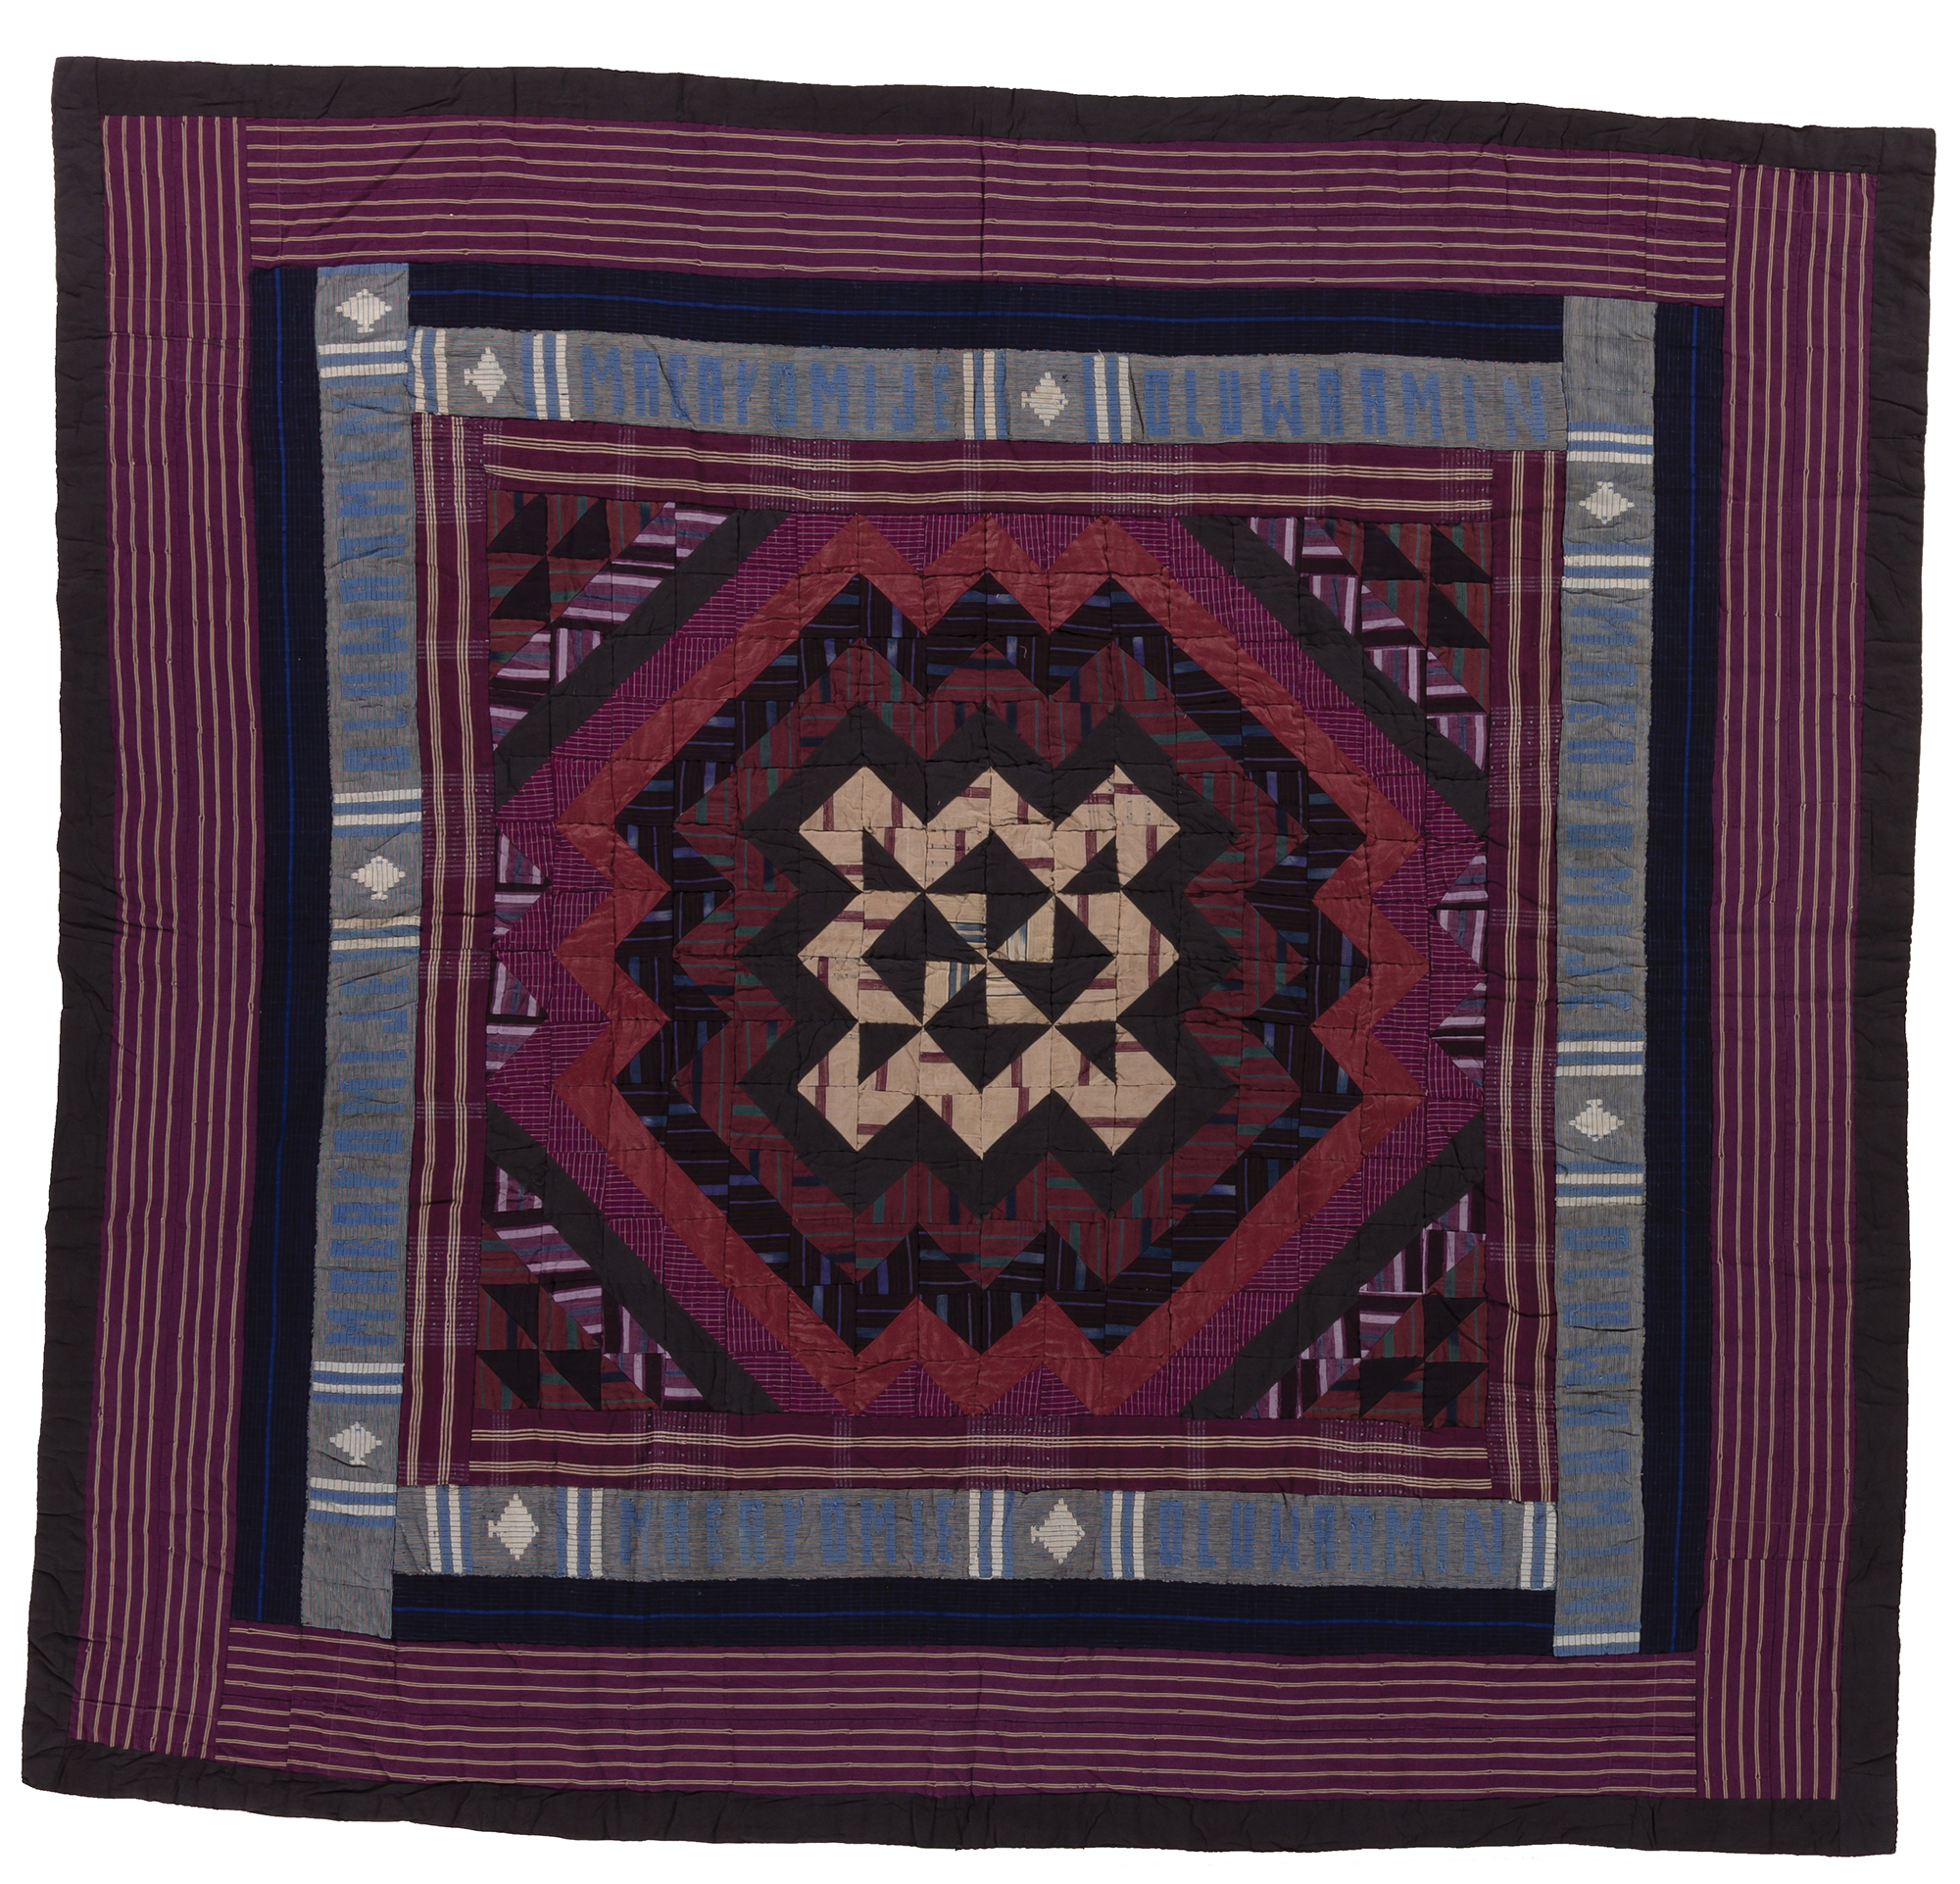 Ashoké fabric quilt made by the Yoruba people